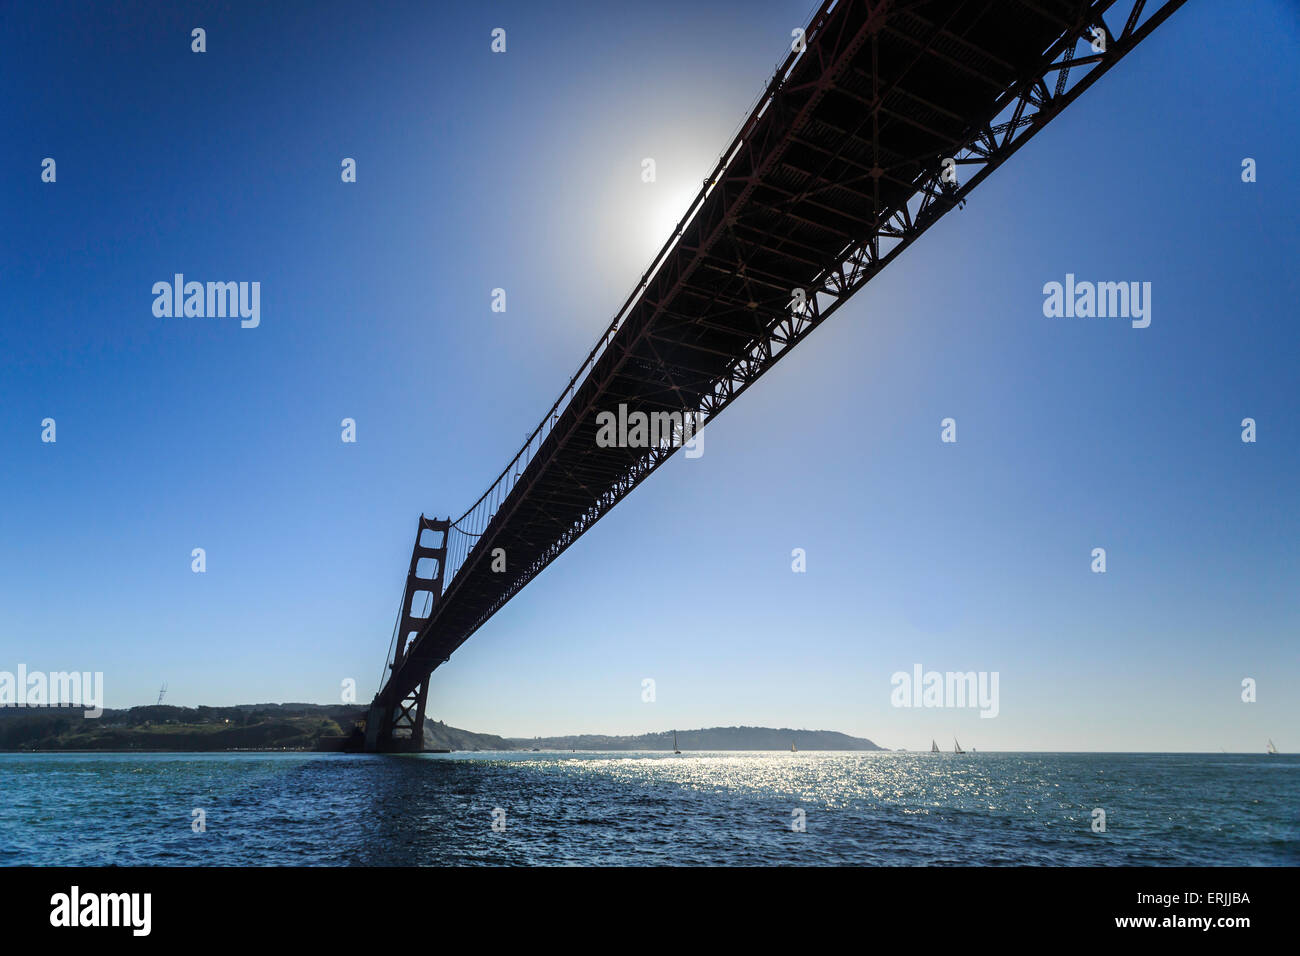 Sun partially blocked by span, of Golden Gate Bridge reflects on San Francisco bay - Stock Image